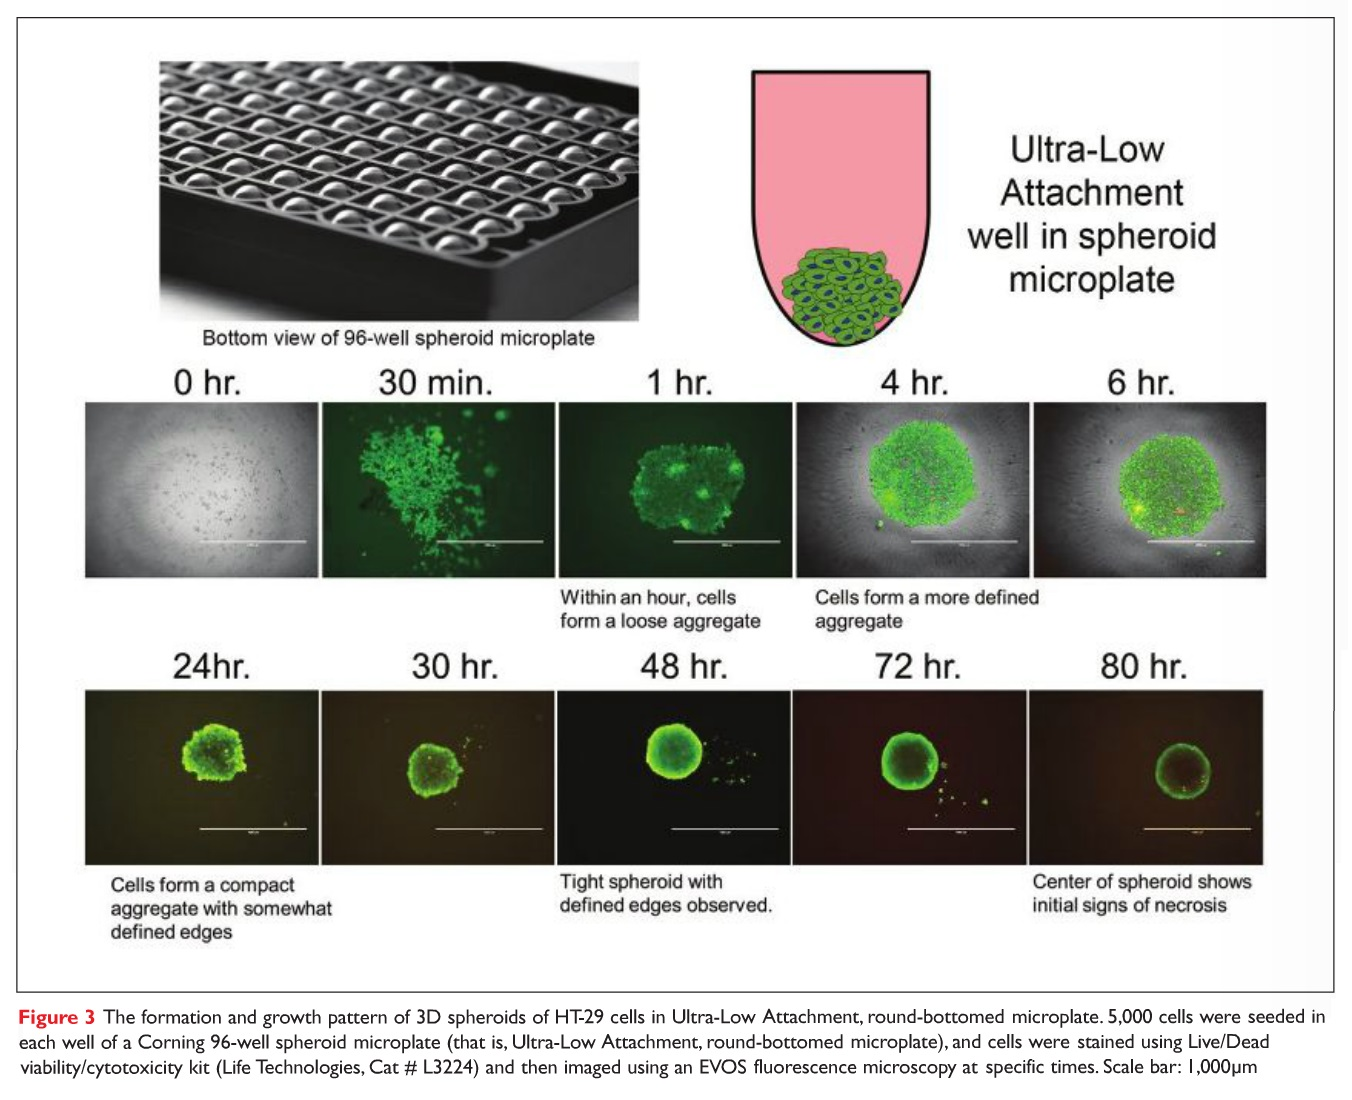 Figure 3 The formation and growth pattern of 3D spheroids of HT-29 cells in Ultra-Low Attachment, round-bottomed microplate